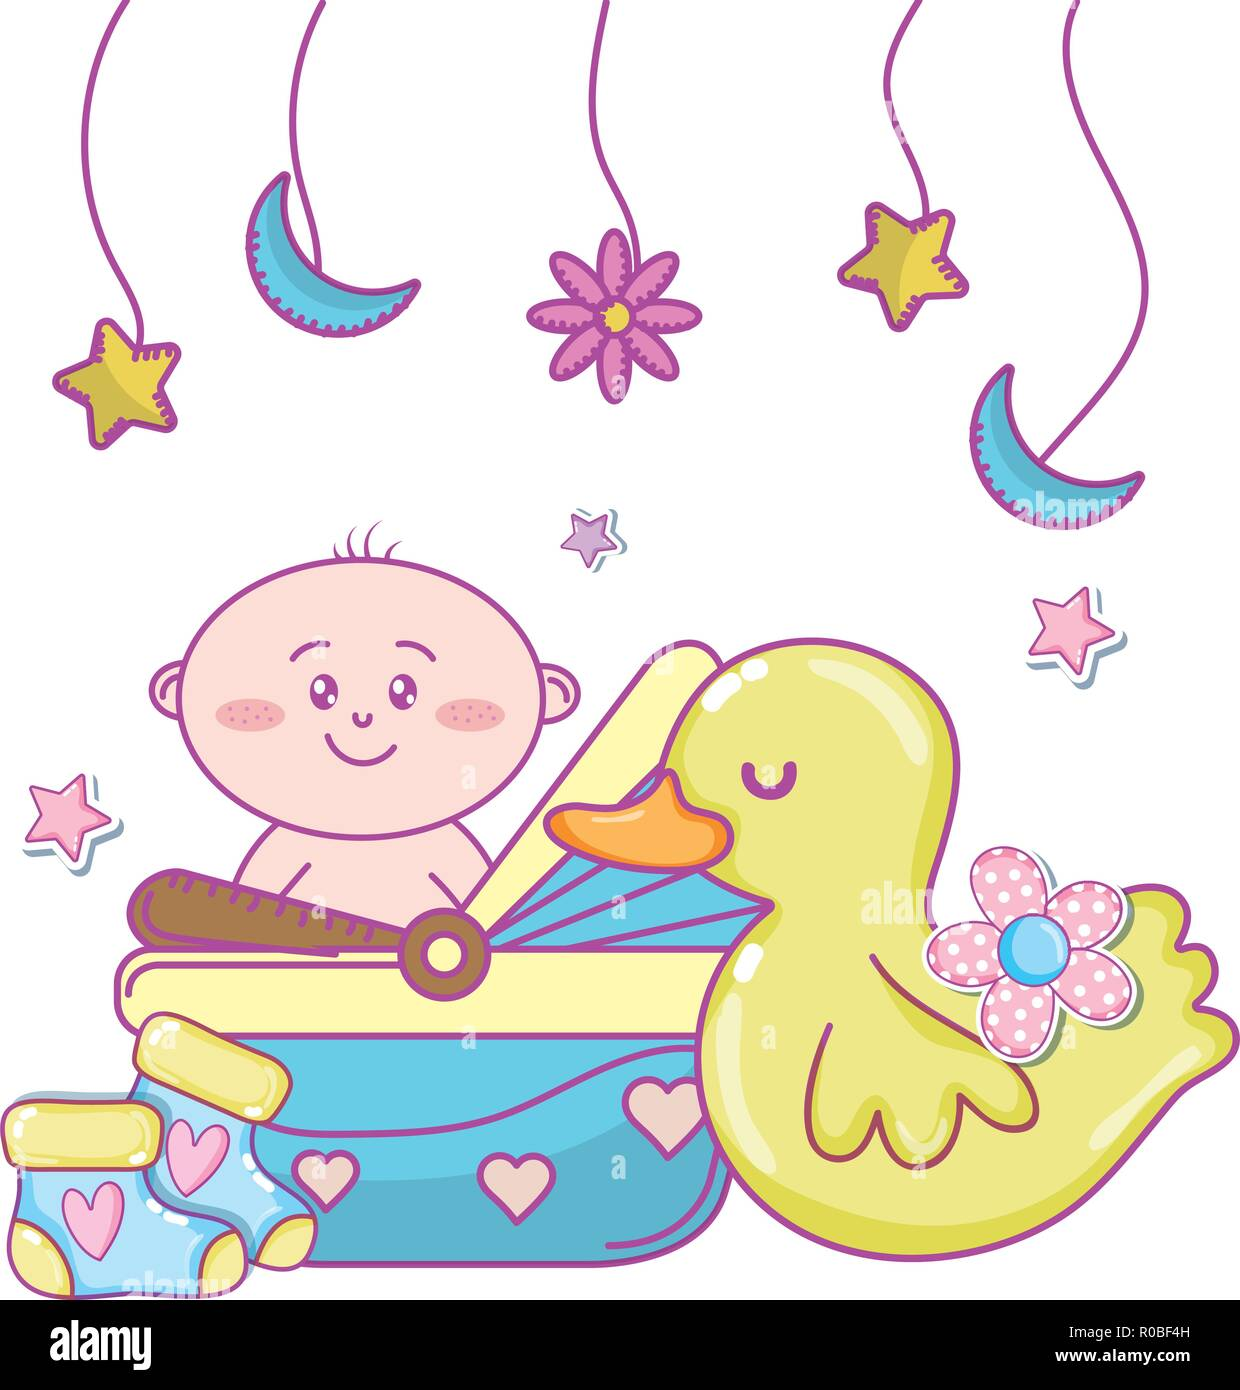 Baby Shower Toys And Cute Elements Cartoon Vector Illustration